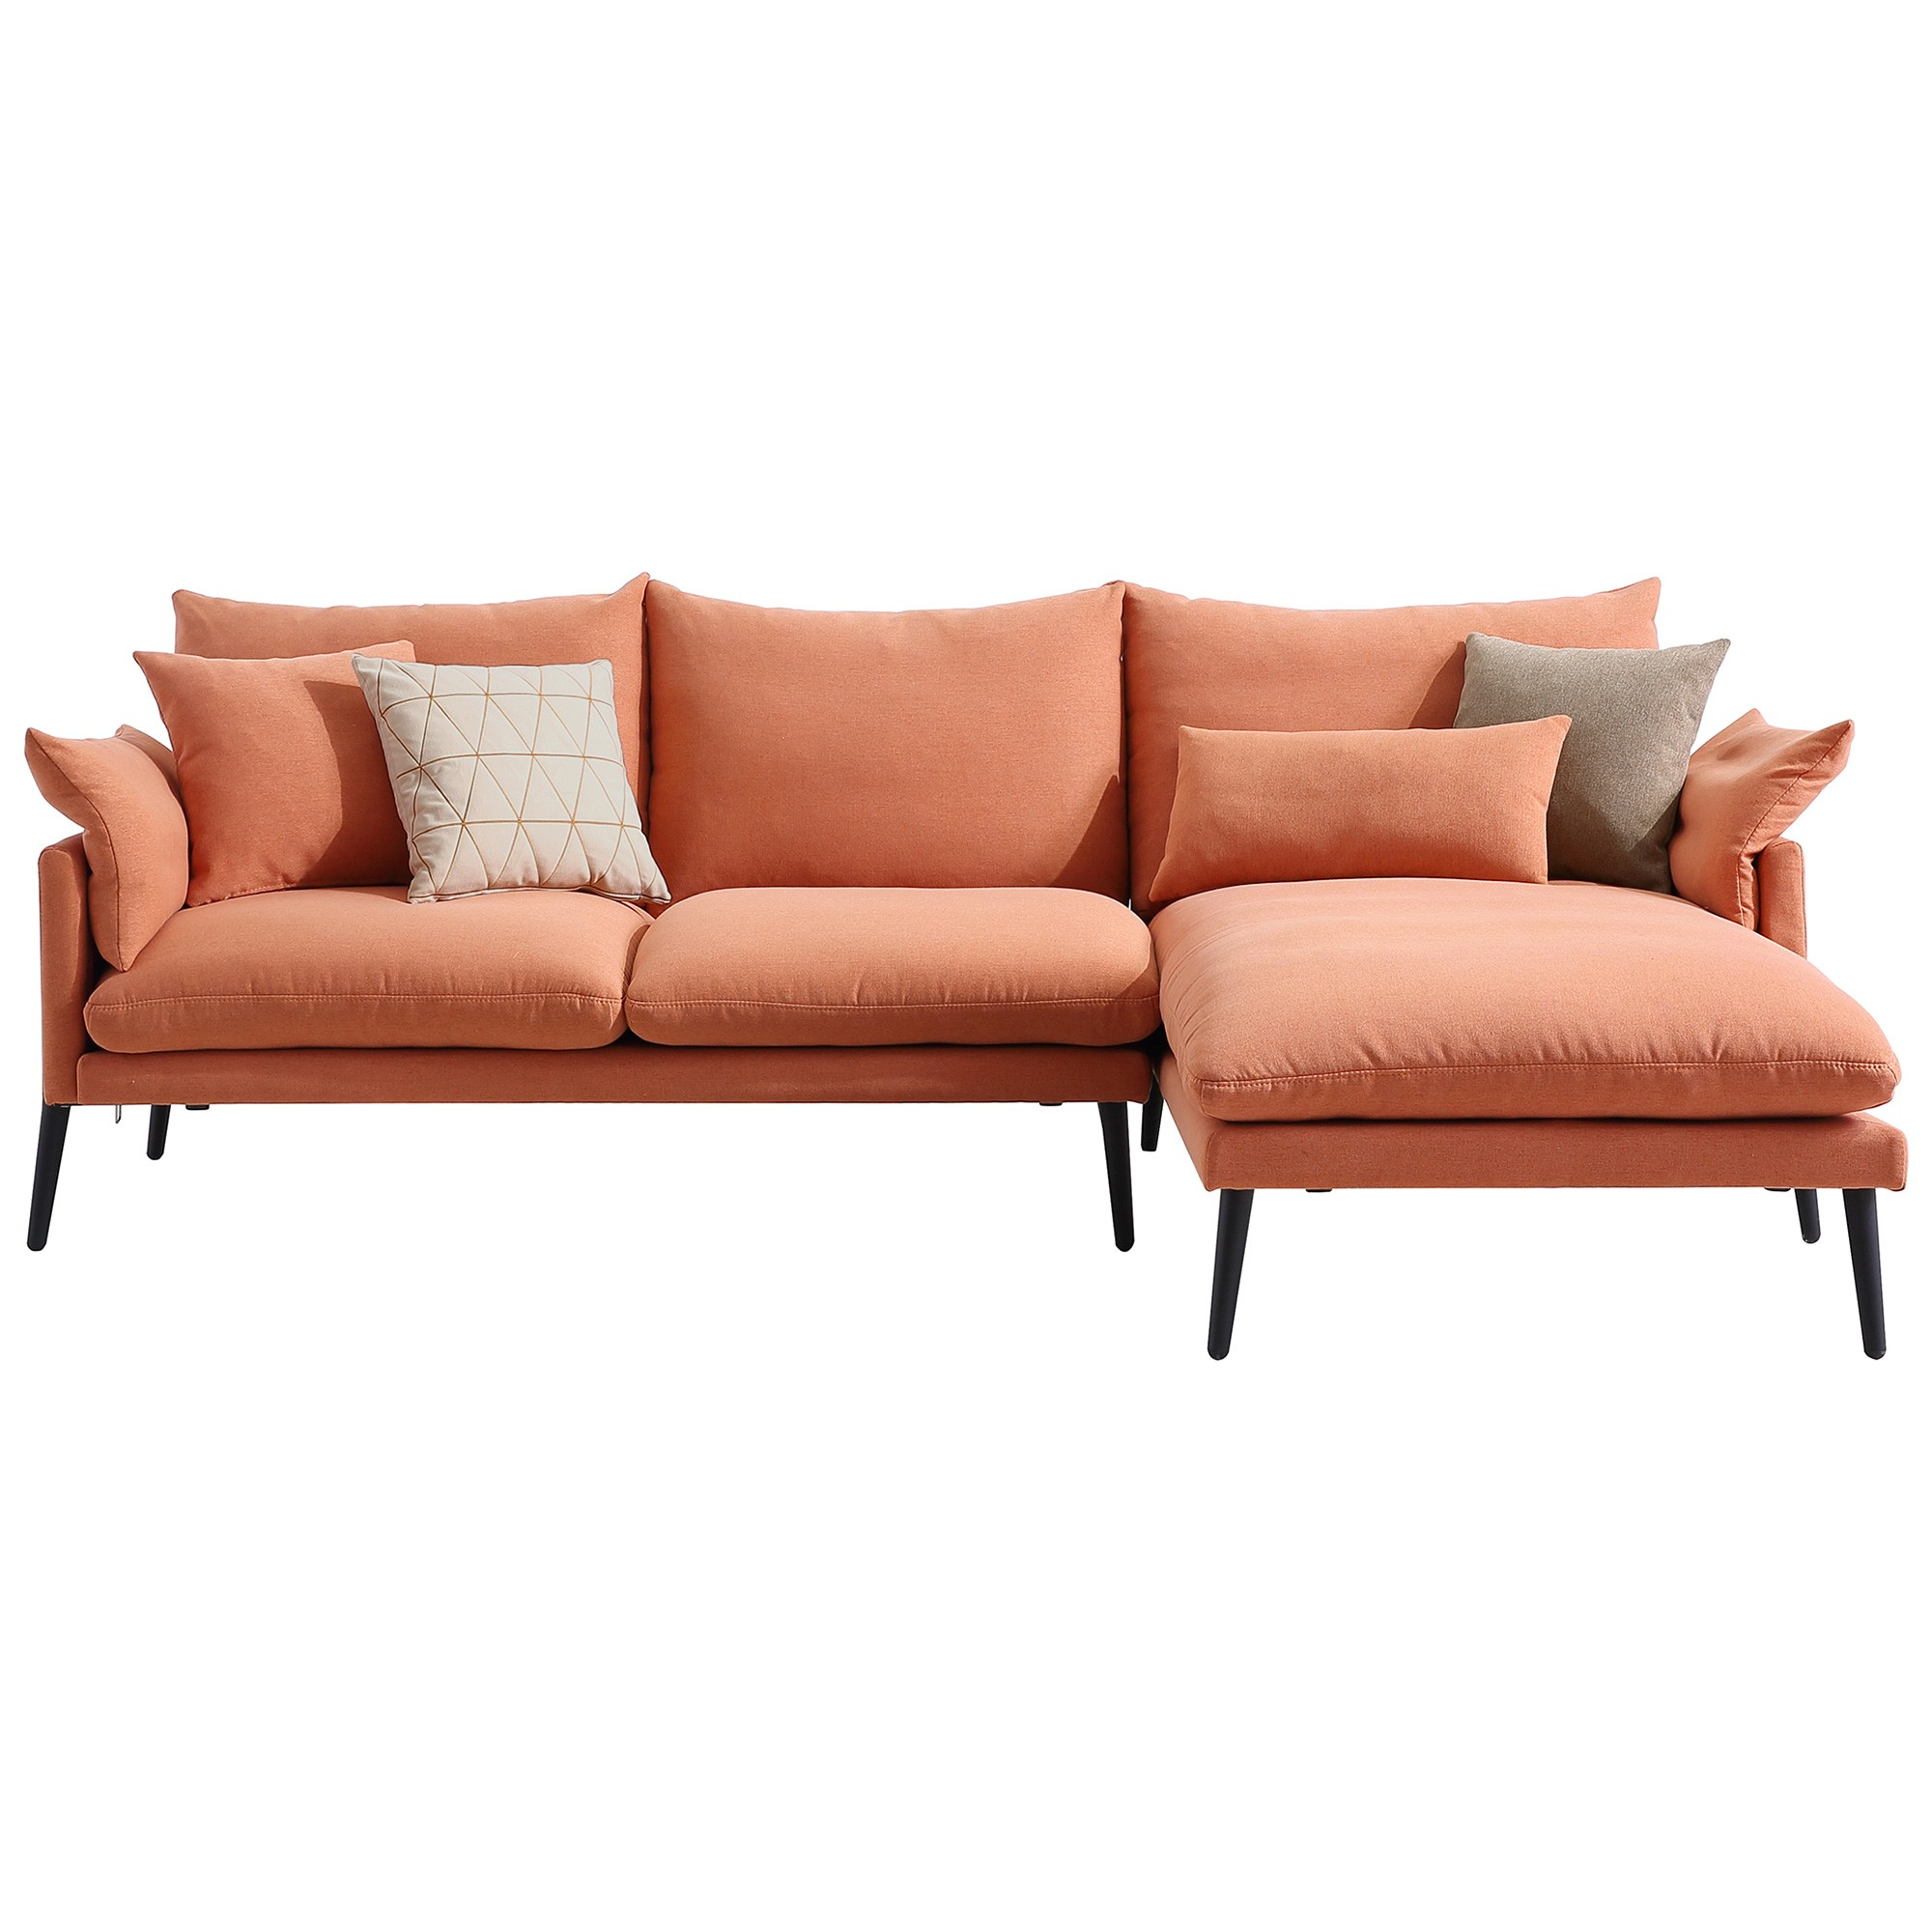 Tilly Fabric Corner Sofa, 3 Seater with RHF Chaise, Copper